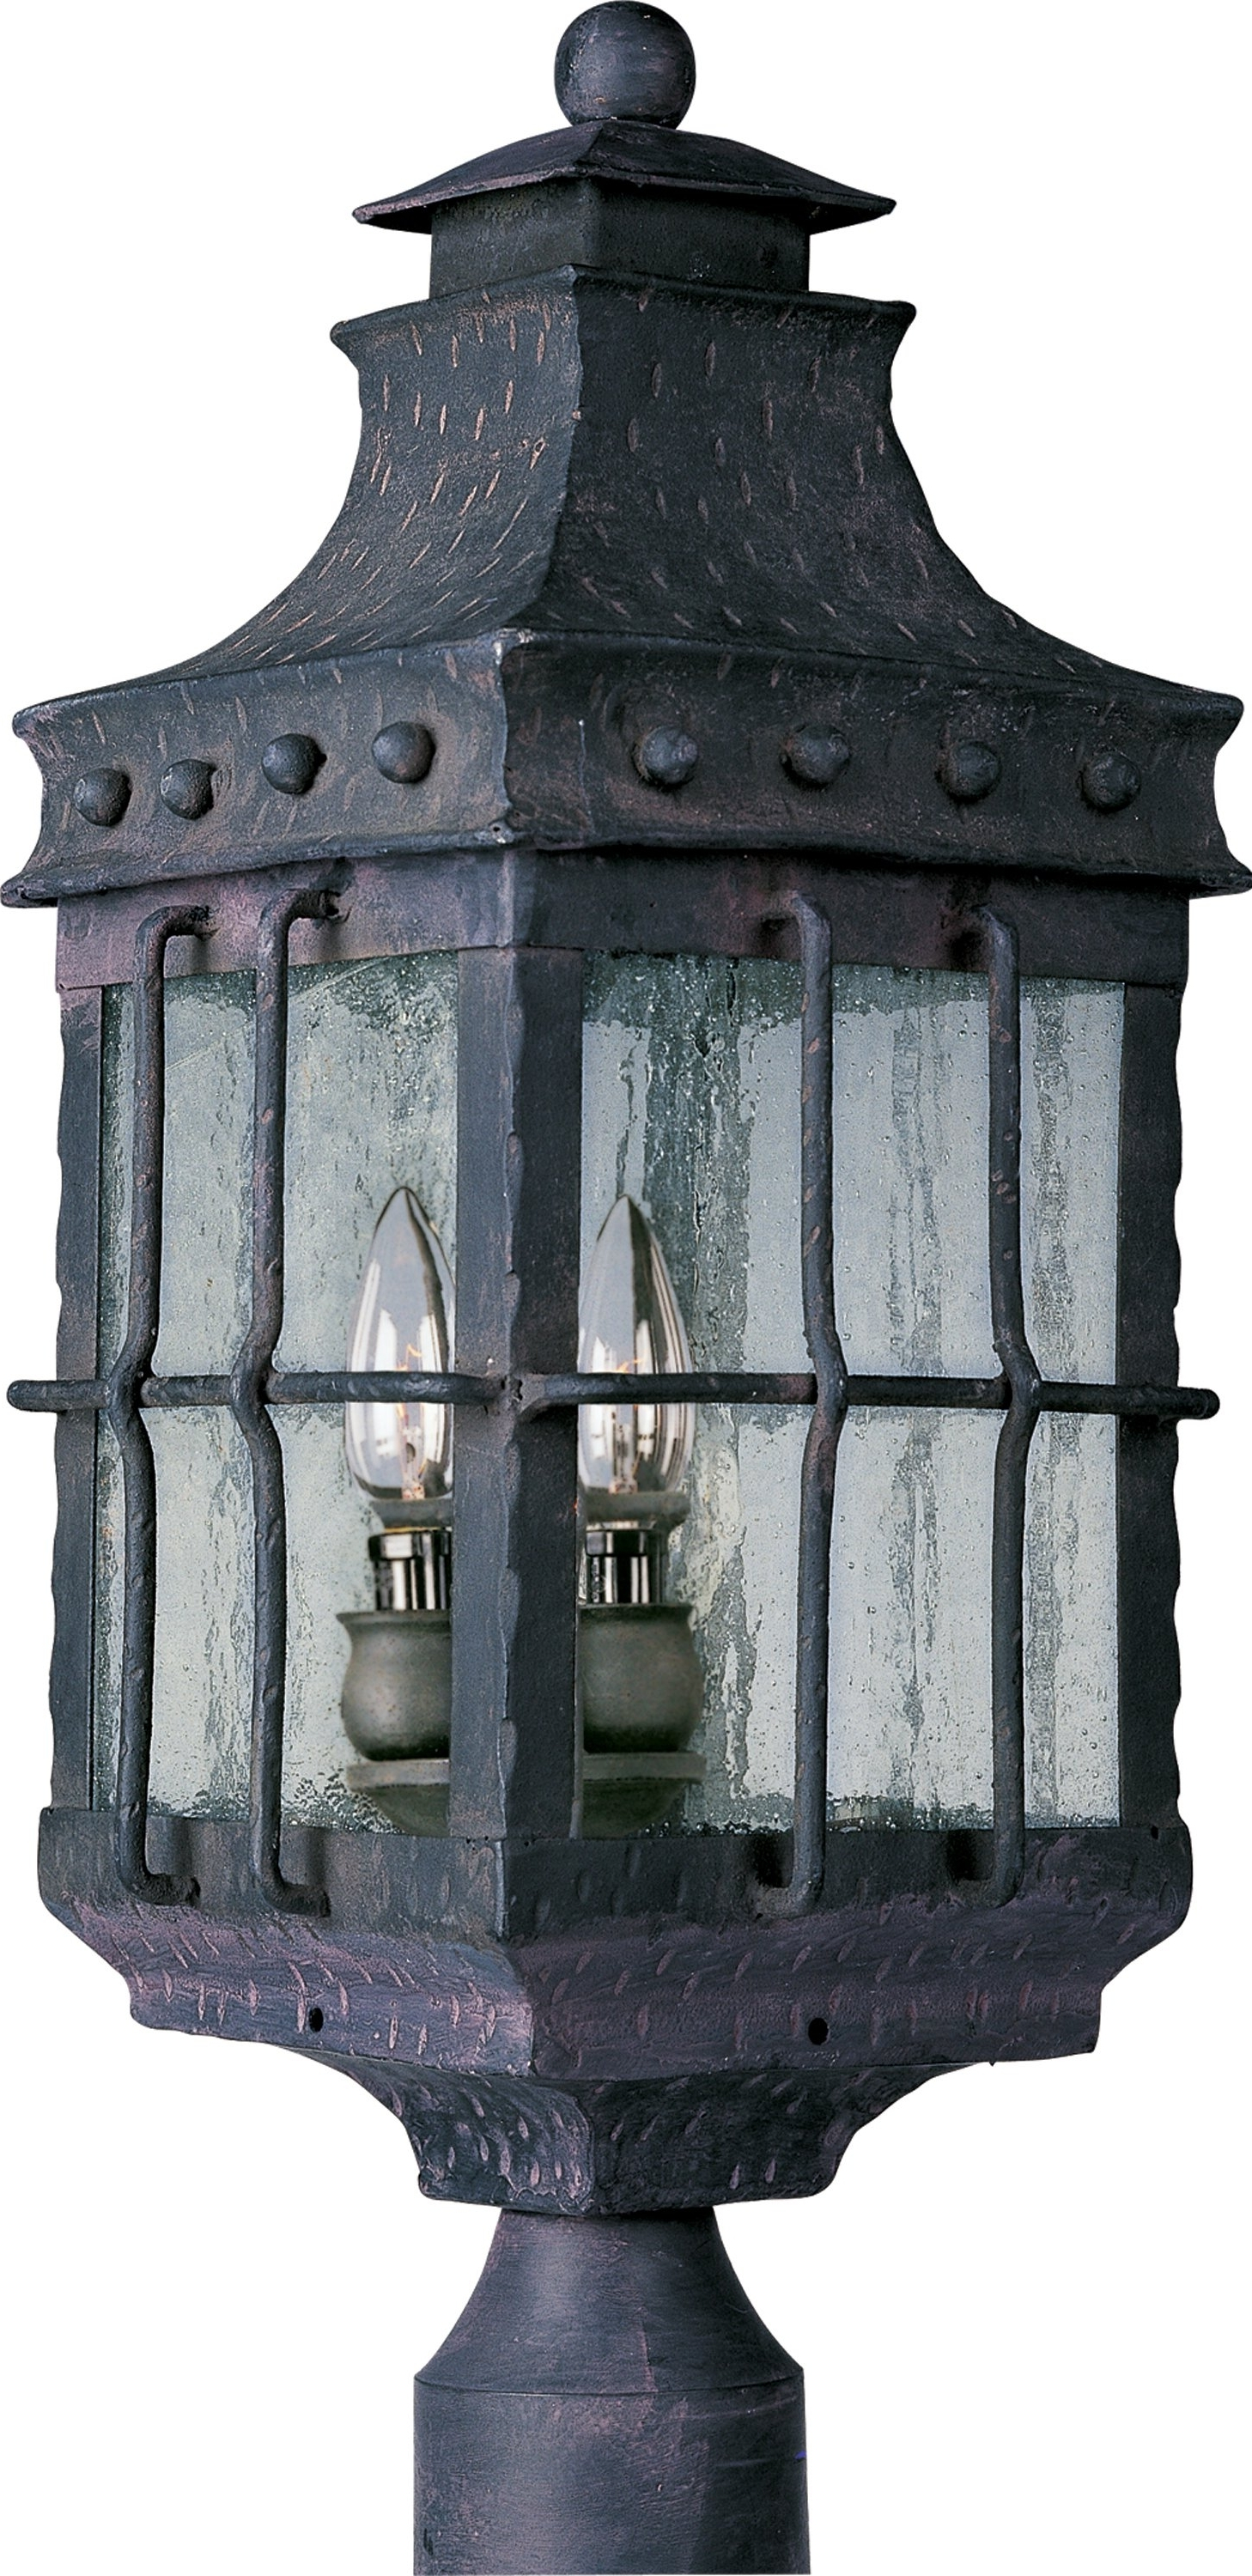 Elite Fixtures Regarding Nantucket Outdoor Lanterns (View 18 of 20)